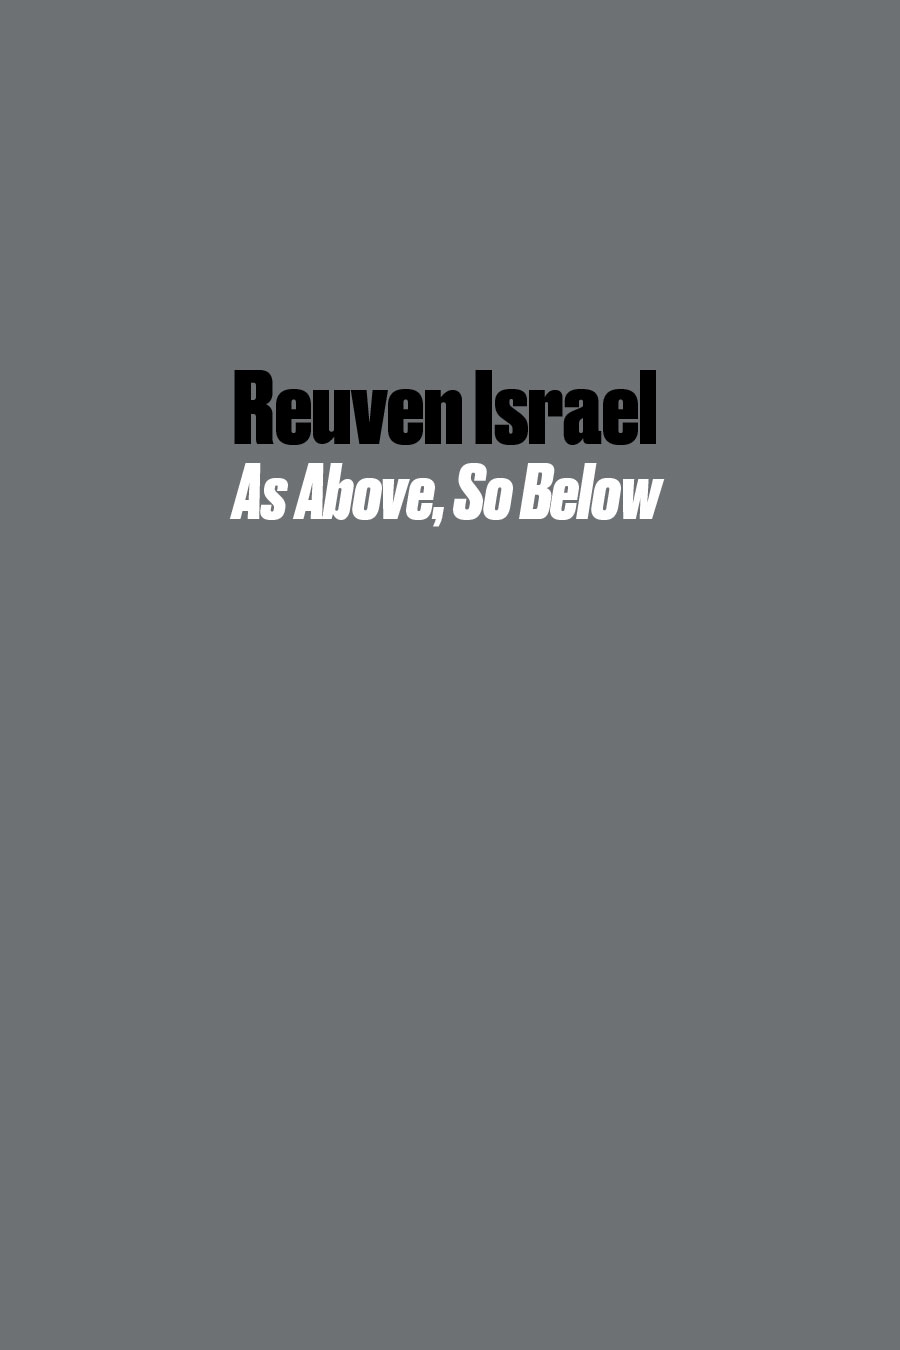 Reuven-Israel-as-above-so-below-catalog-cover.jpg